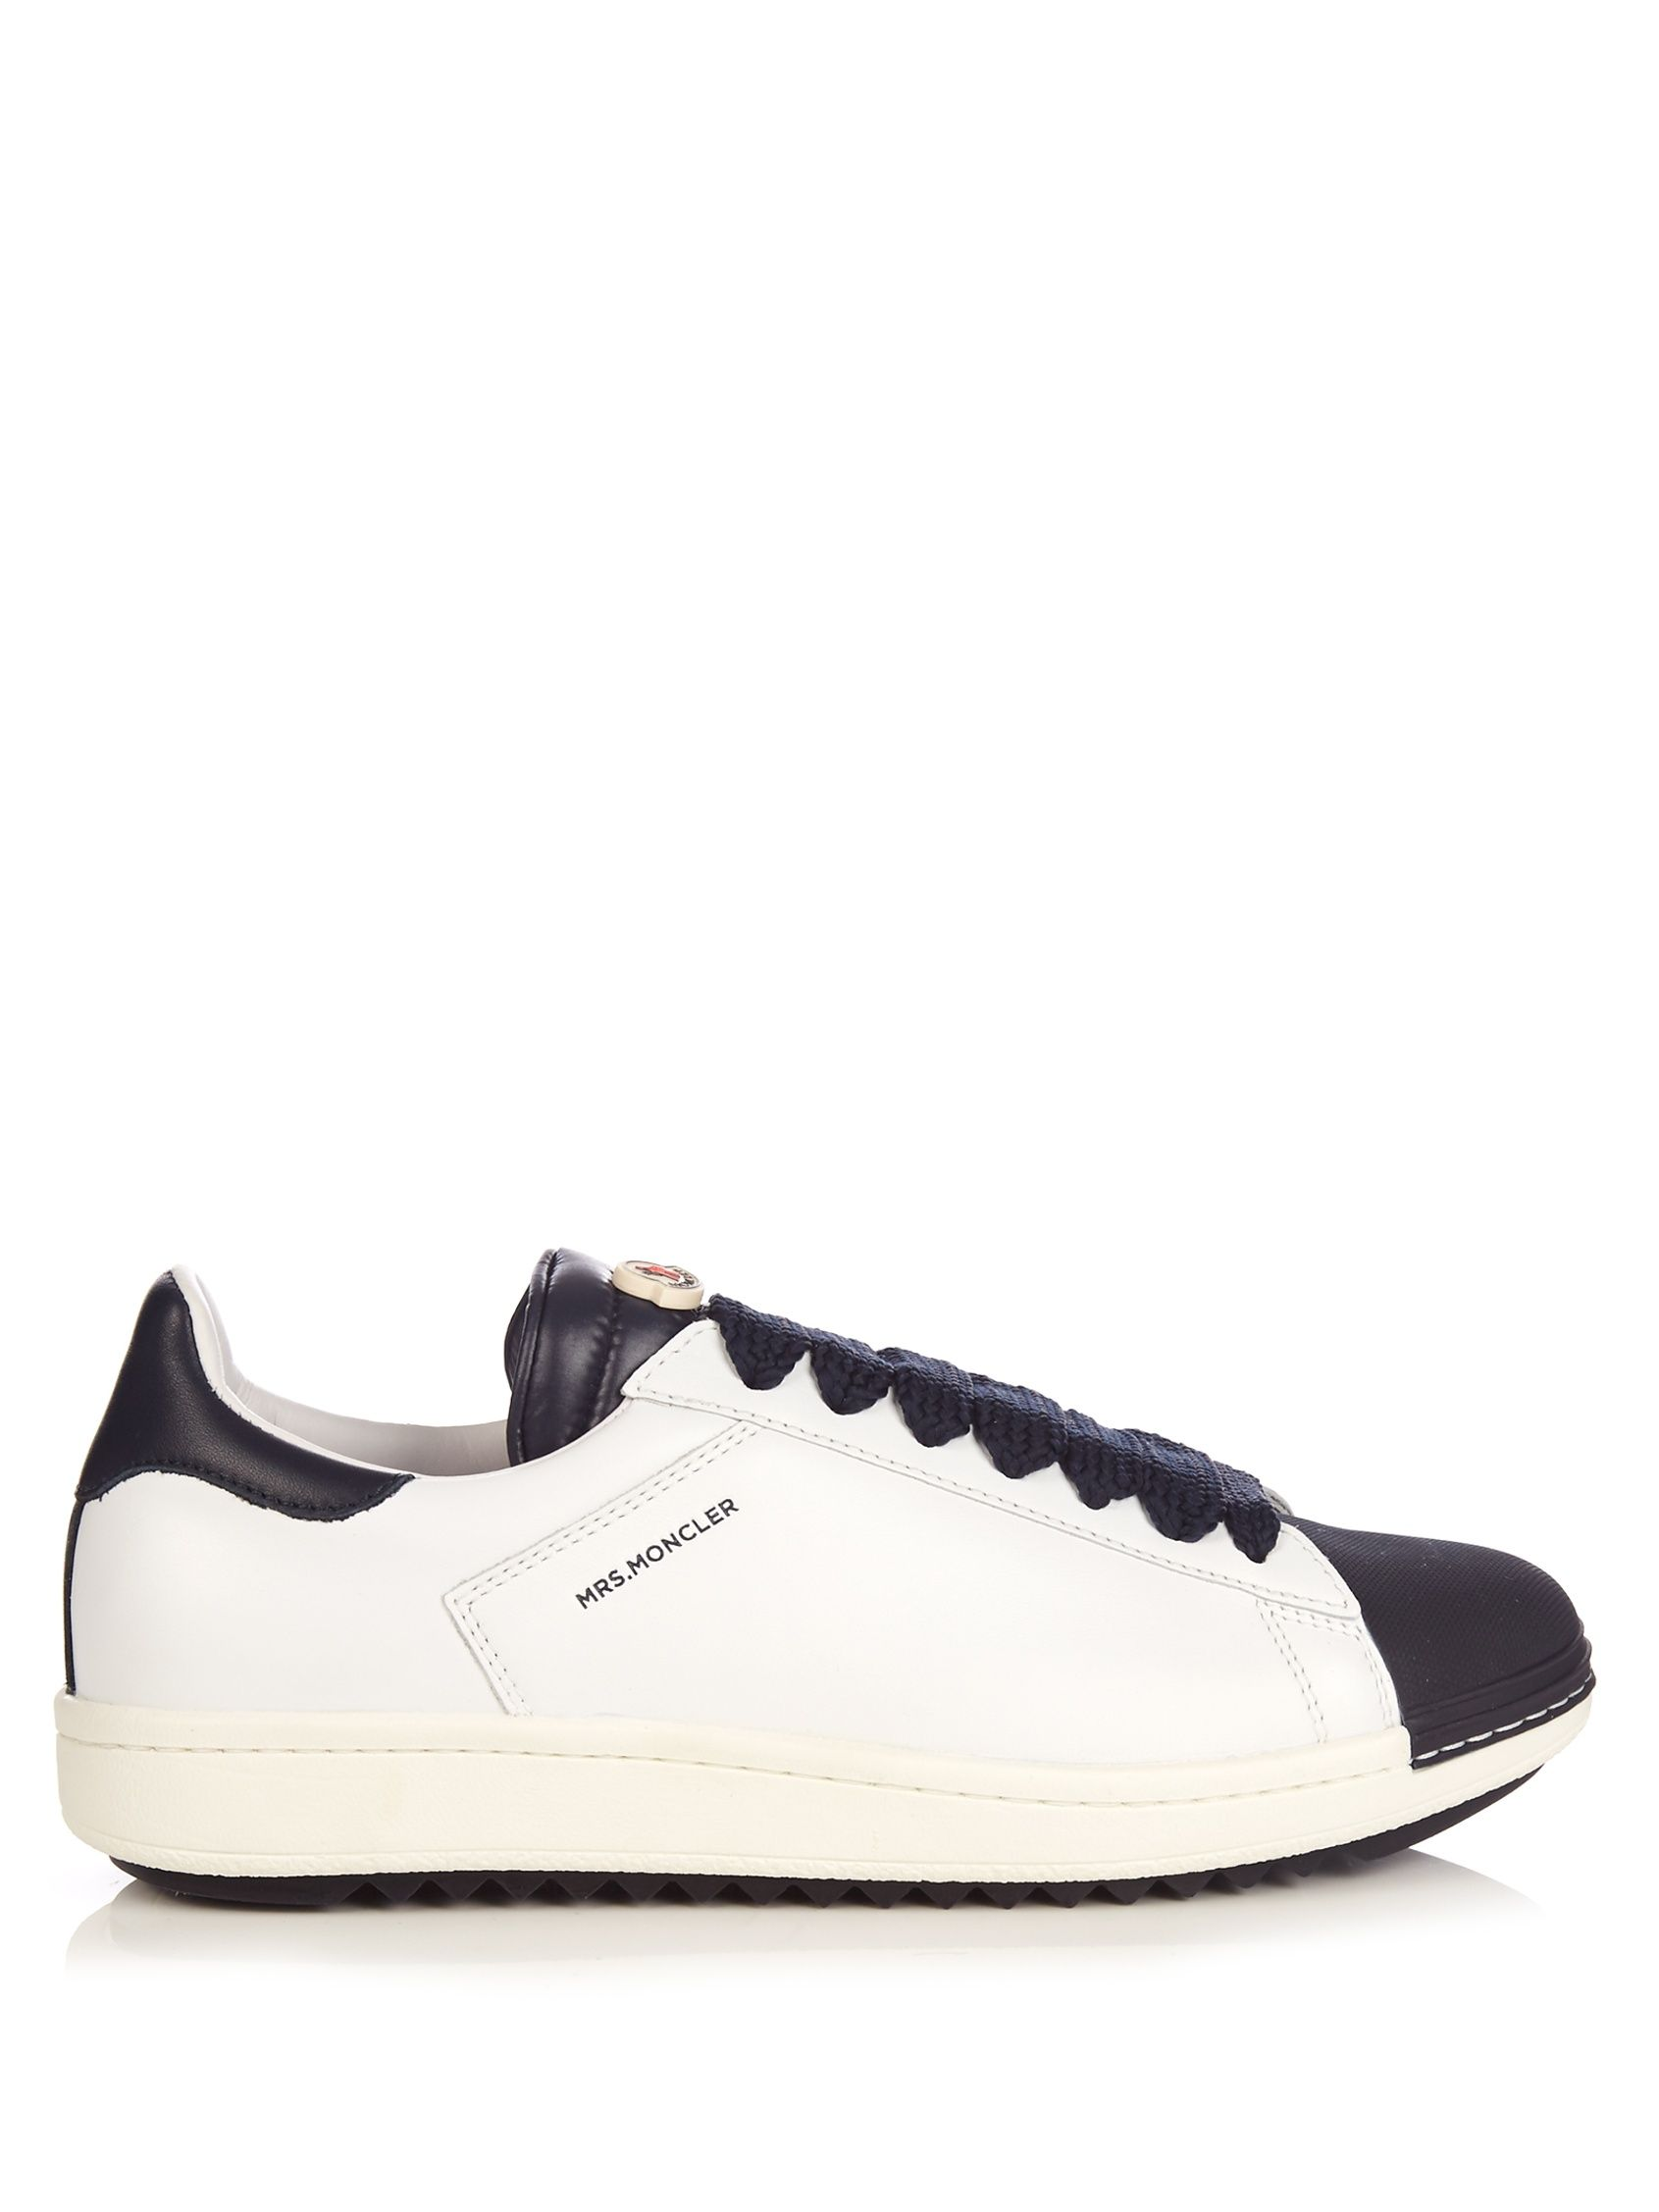 28cb3c775 Click here to buy Moncler Angeline low-top leather trainers at ...